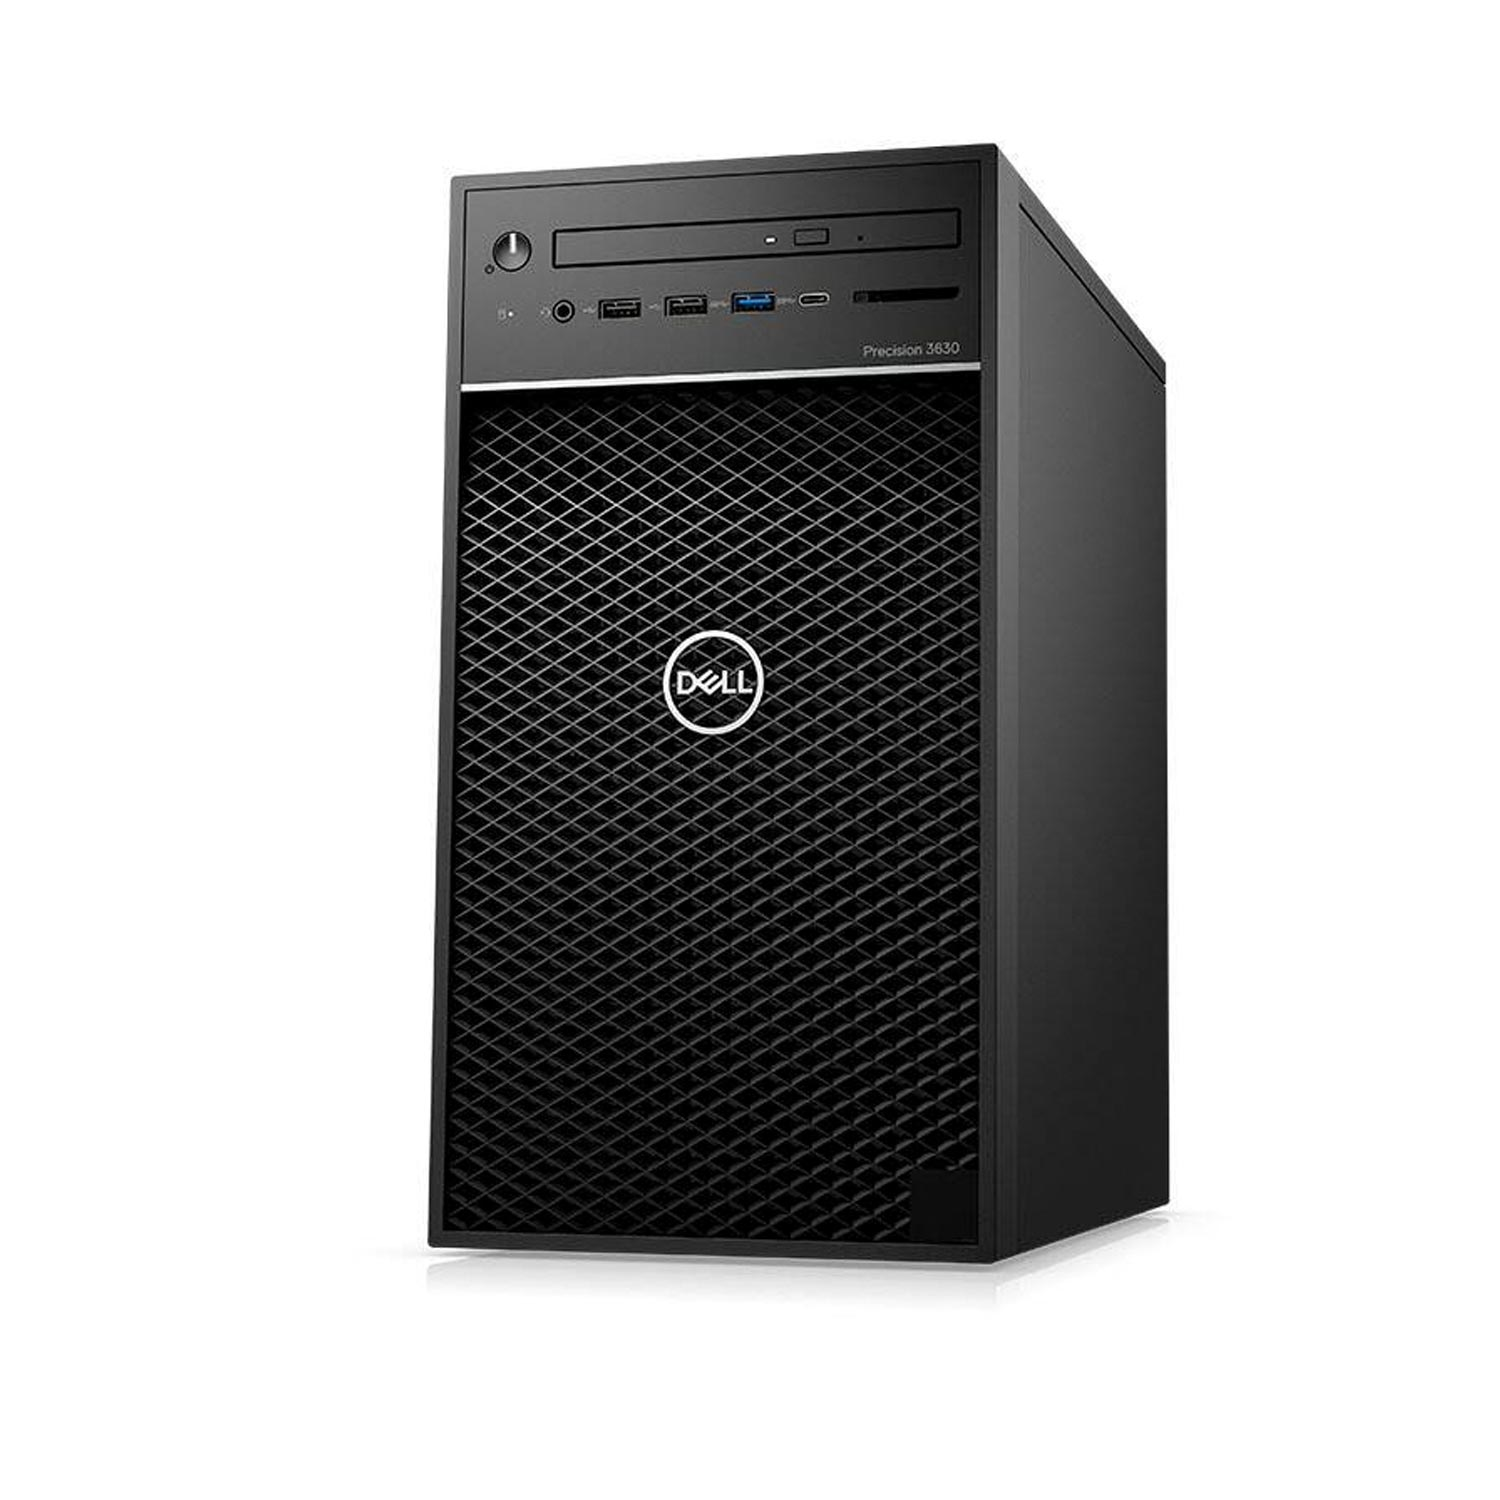 Precision 3630 Tower Xeon